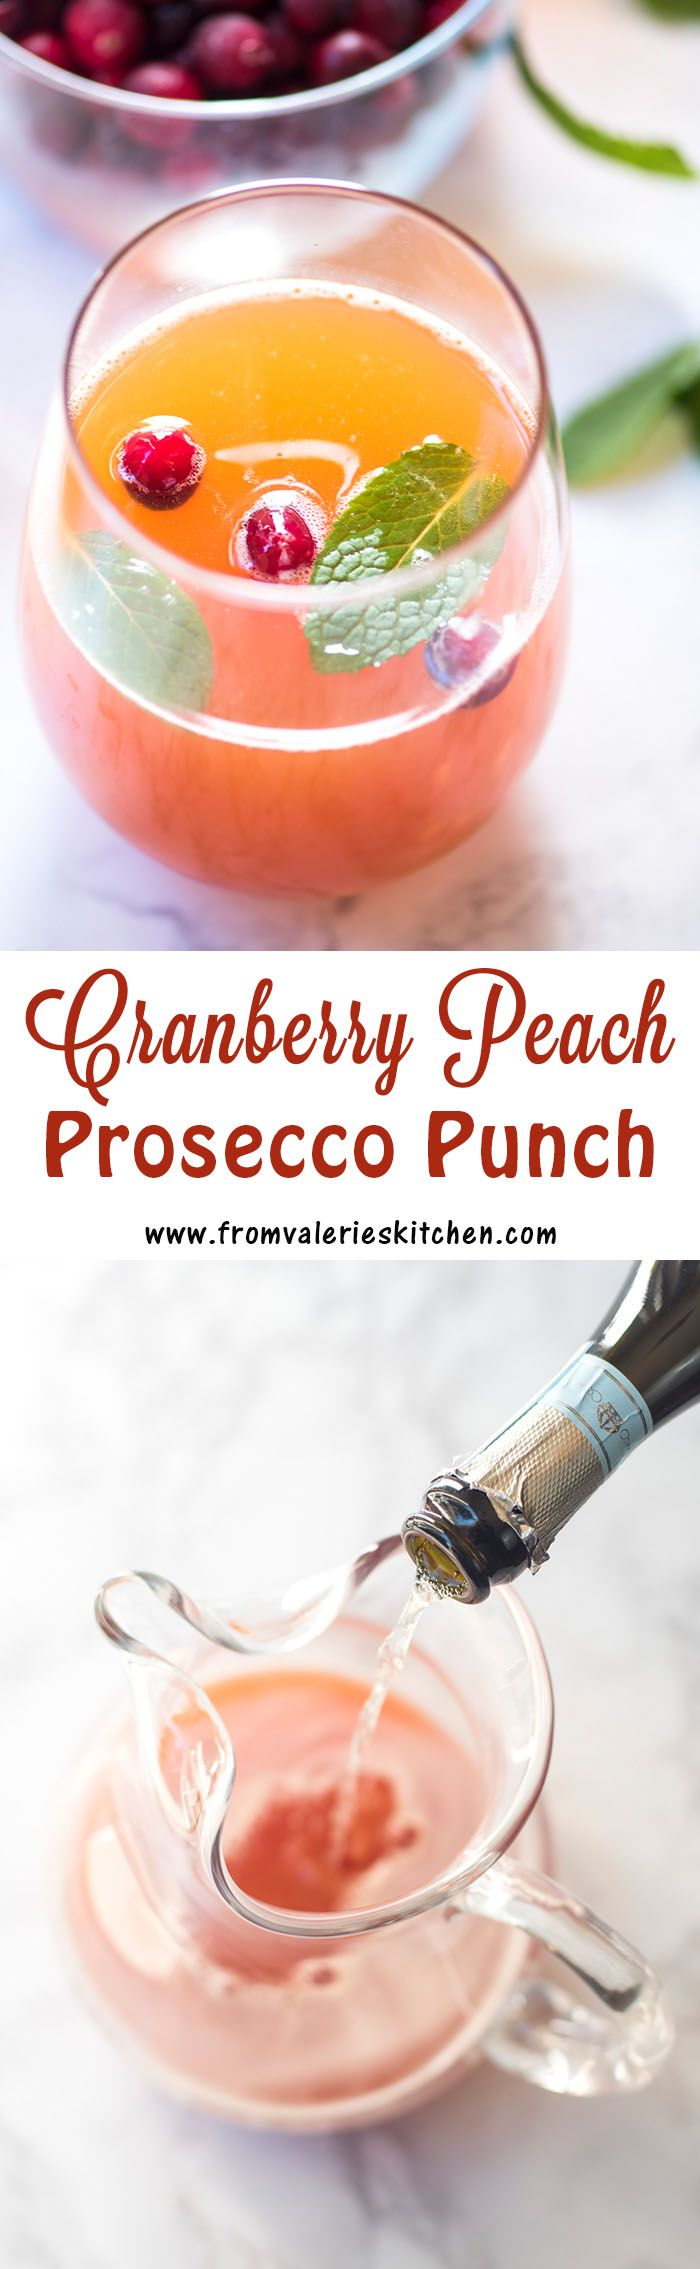 Cranberry Peach Prosecco Punch is a sweet, bubbly, and exceptionally festive beverage perfect for a holiday brunch or New Year